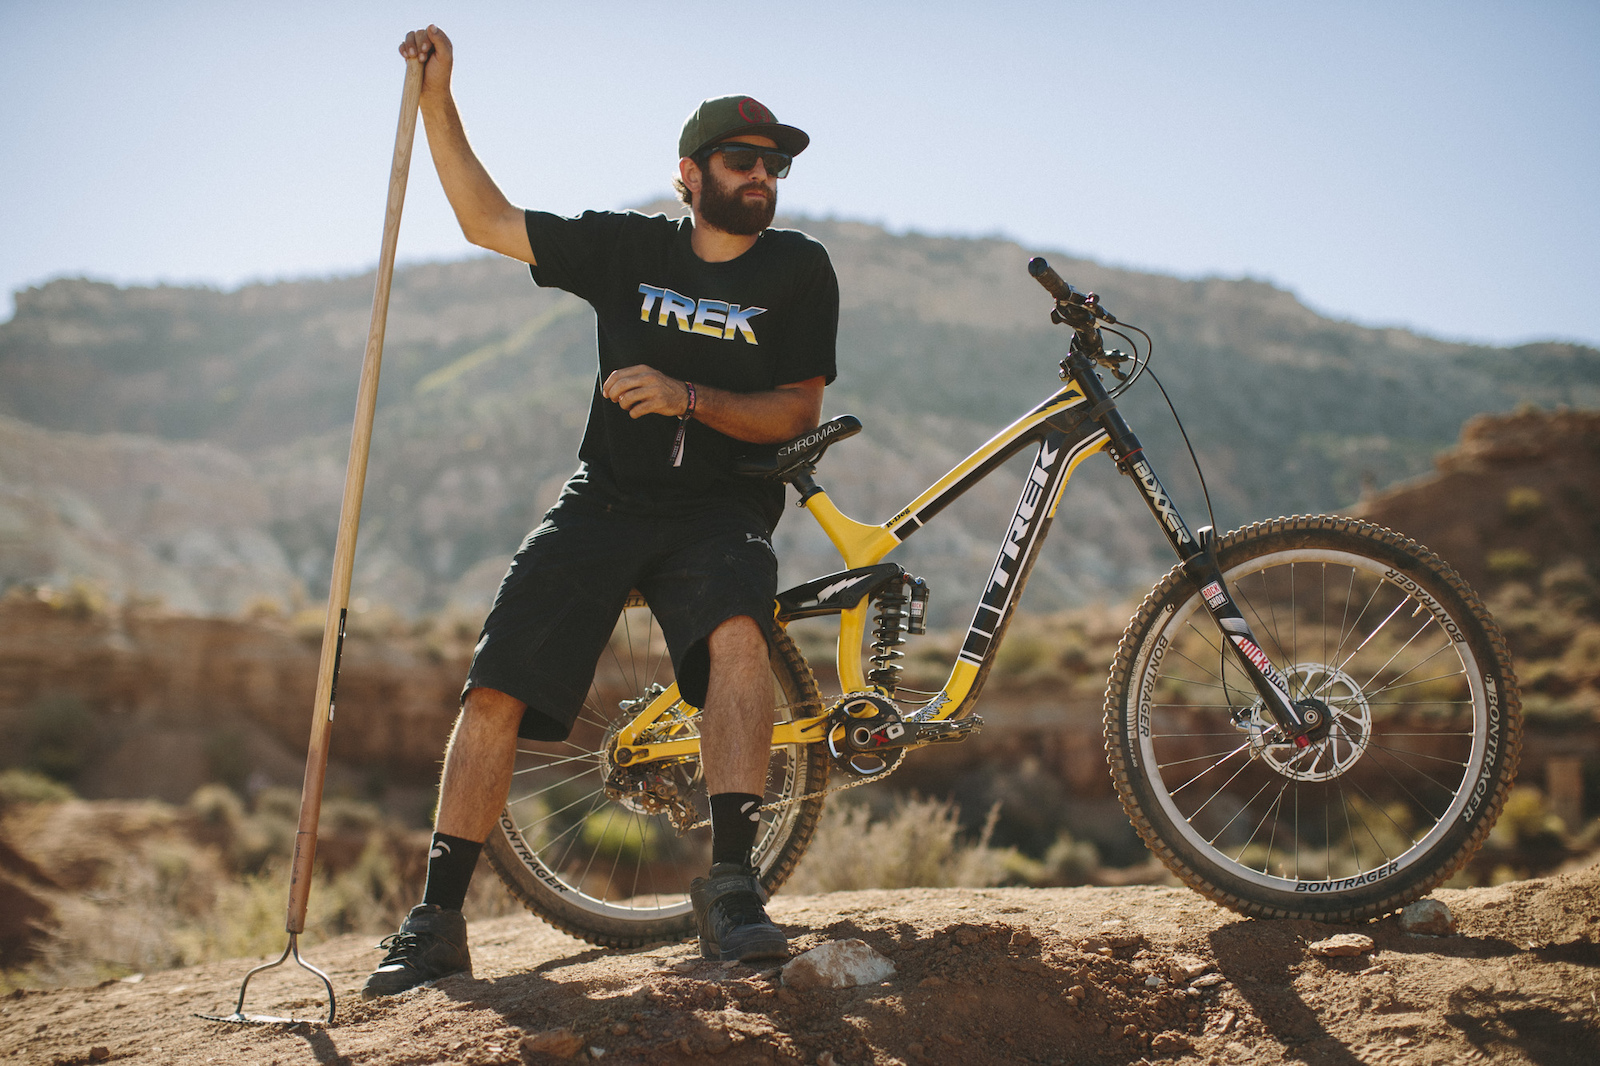 Ryan Howard at RedBull Rampage 2015 Virgin Utah USA